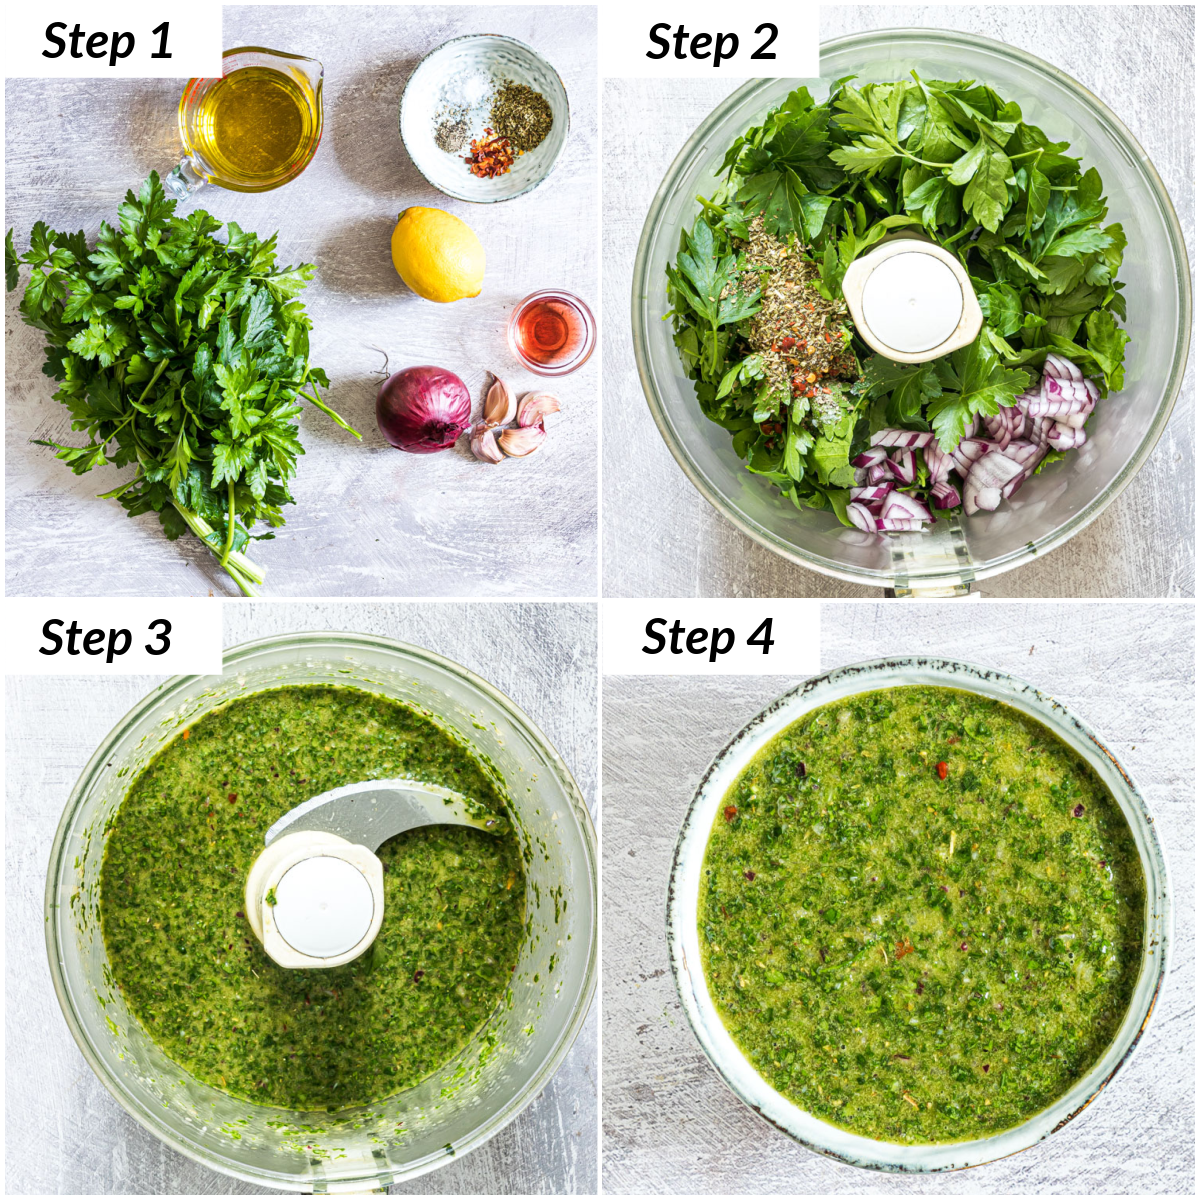 image collage showing the steps for making Chimichurri sauce